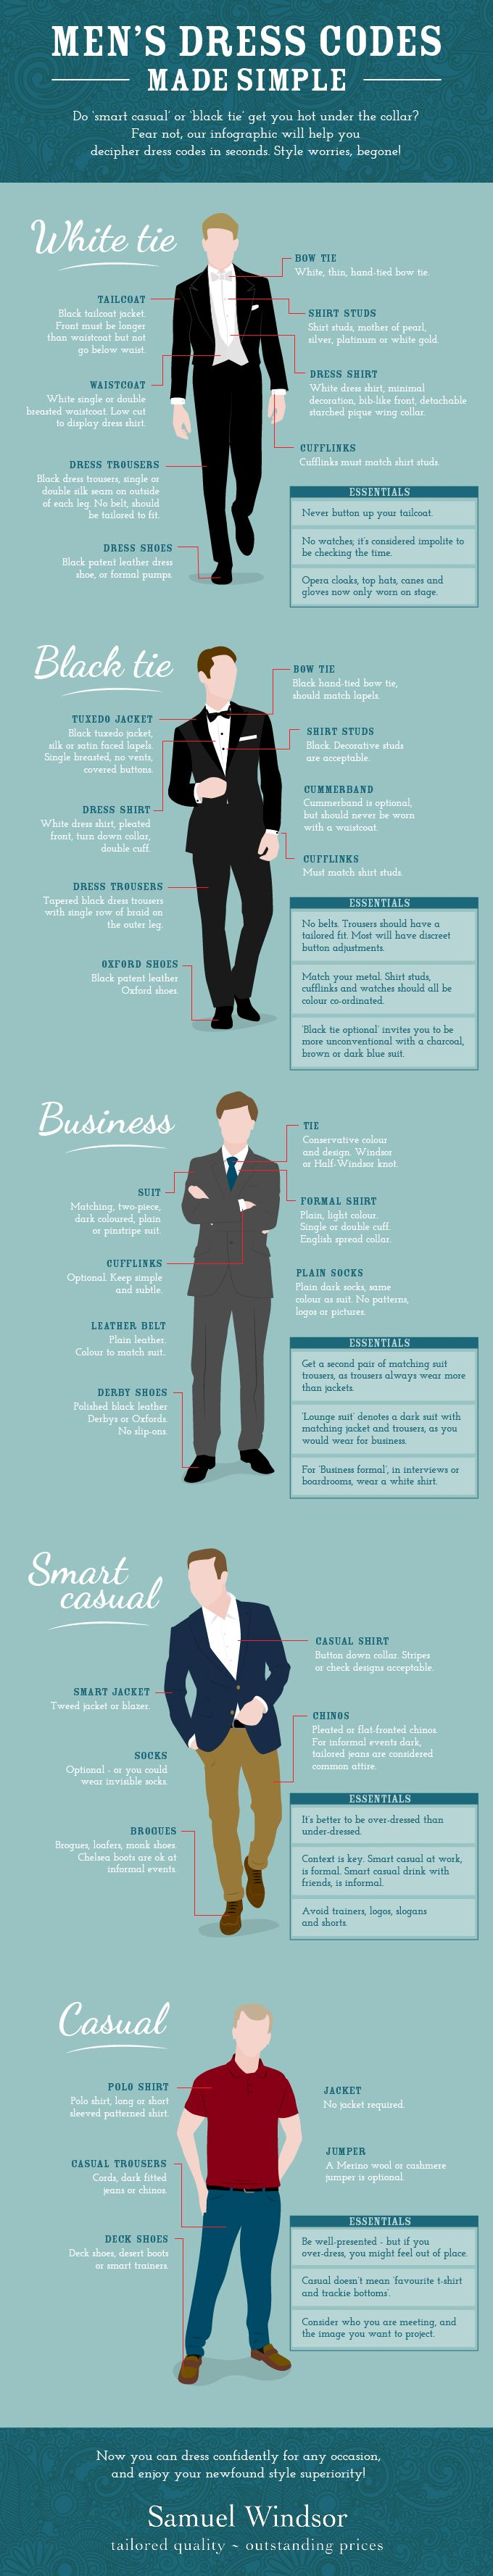 Dress code for smart casual smart casual dress code for men pictures -  Smart Casual Separates Outfit Inspiration Lookbook See More Mens Dress Codes Can Be Confusing So Use Our Dress Code Infographic To Ensure You